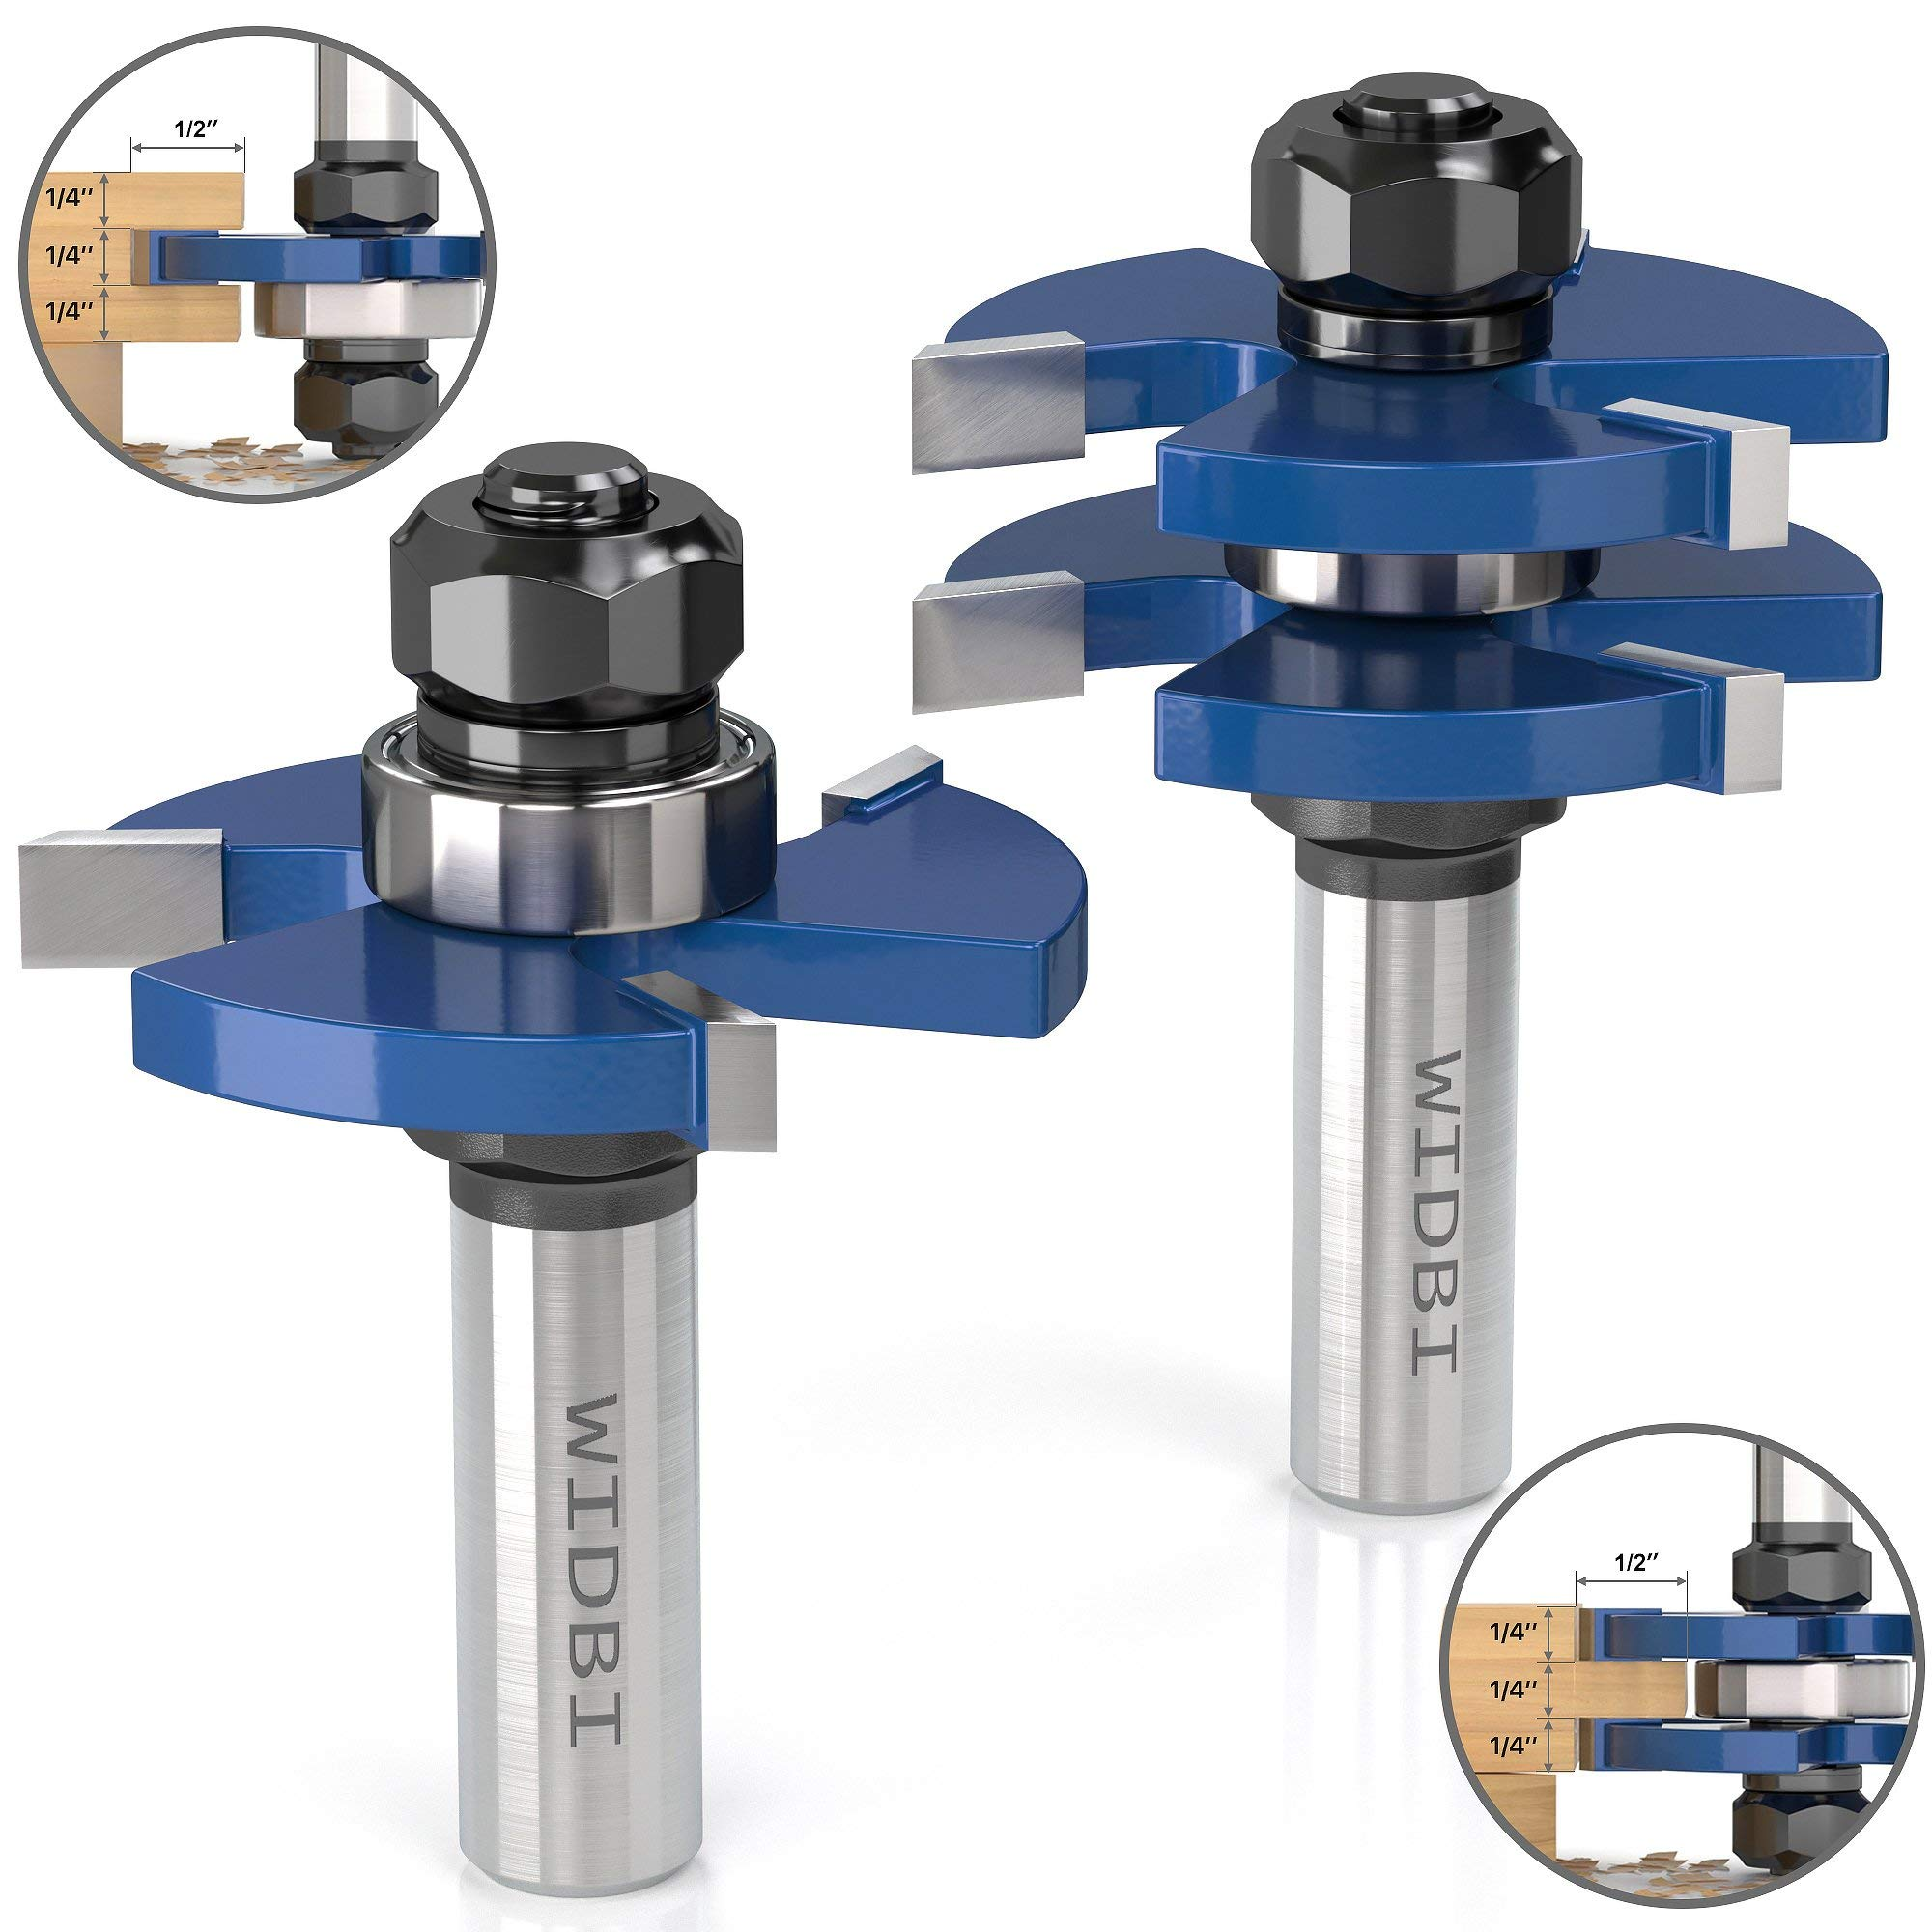 """Premium Tongue and Groove Router Bits - Matched 2 Bit Set - 1/2"""" Shank 3 Teeth T-Shape Milling Cutter, Hardened K10 Carbide Router Bits for Woodworking (2 pcs)"""